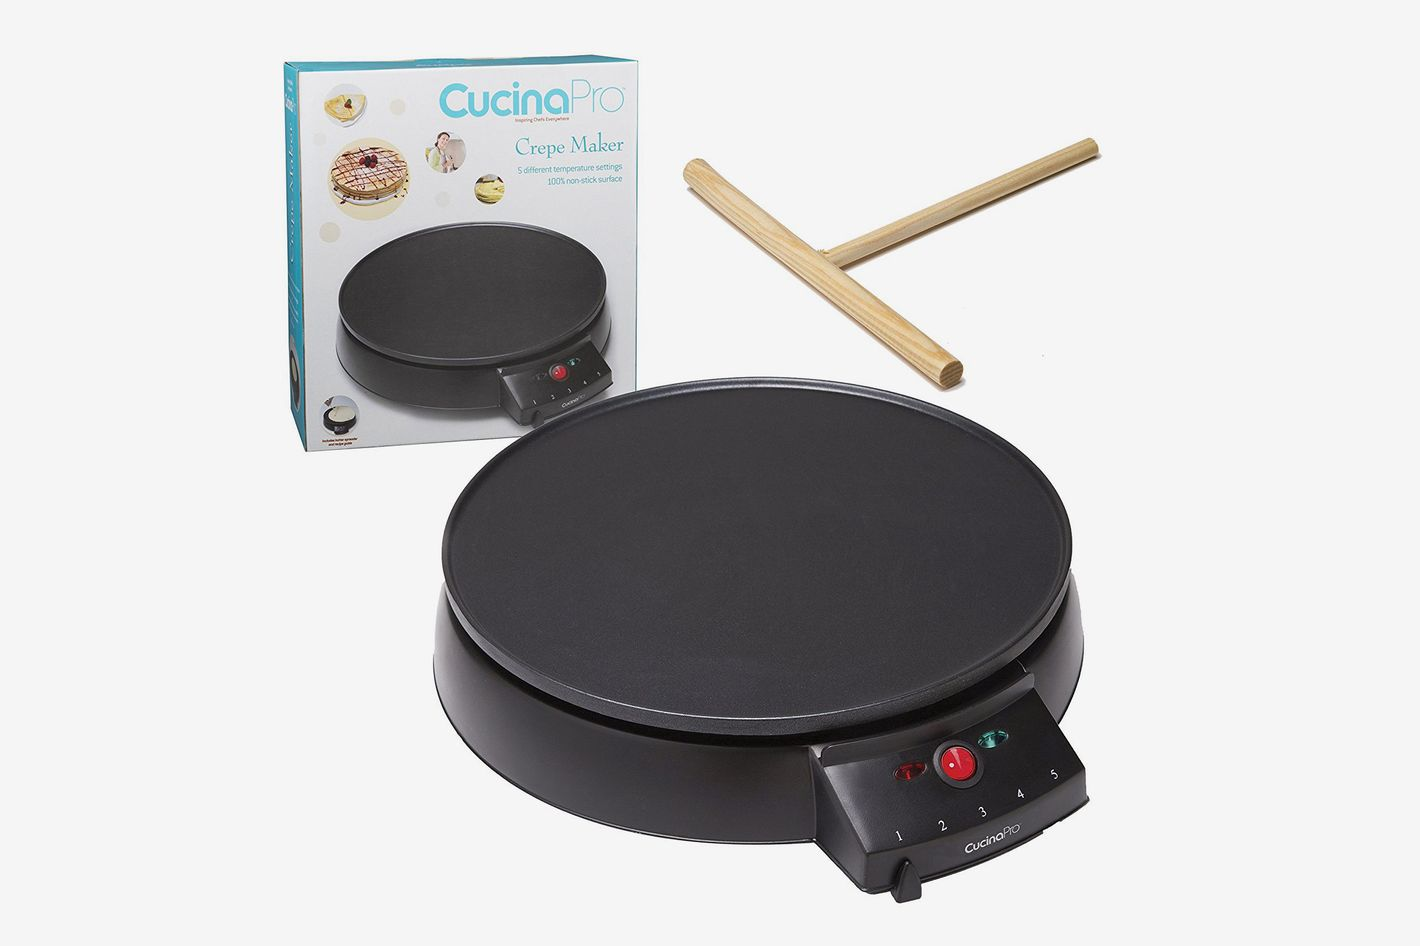 "CucinaPro Crepe Maker and Non-Stick 12"" Griddle- Electric Crepe Pan With Spreader and Recipes Included"